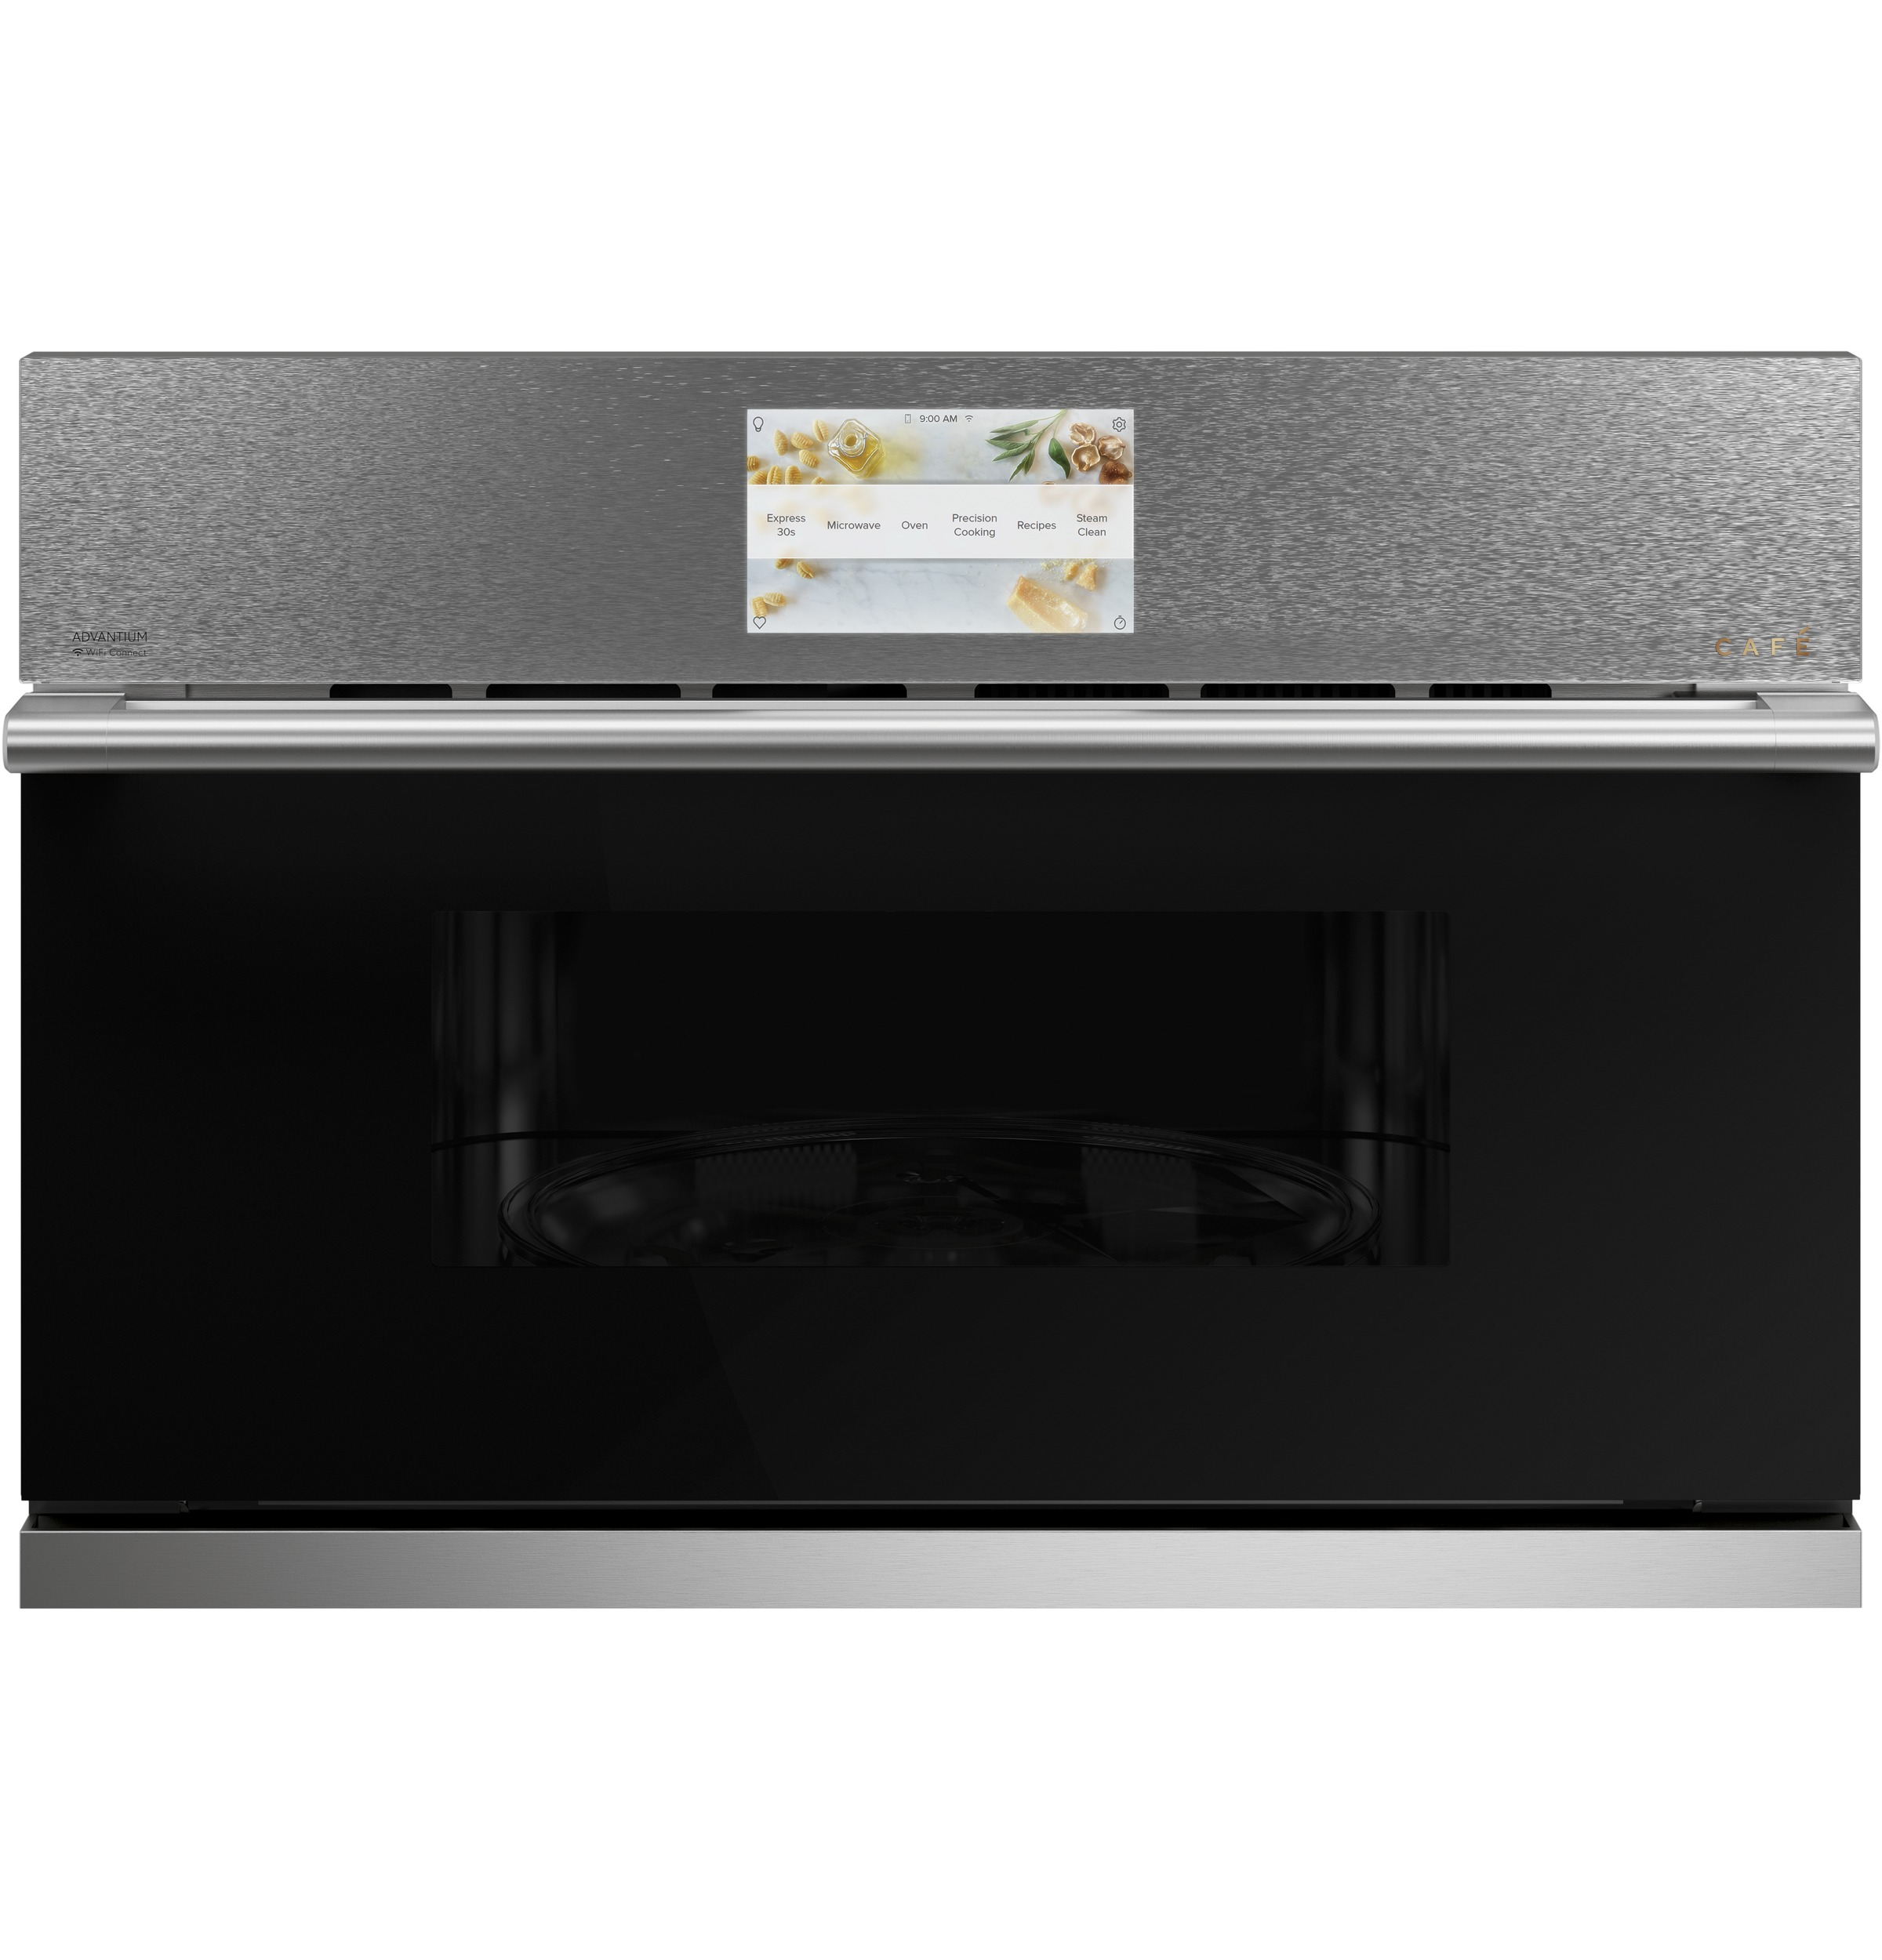 "Cafe Cafe™ 30"" Smart Five in One Oven with 120V Advantium® Technology in Platinum Glass"